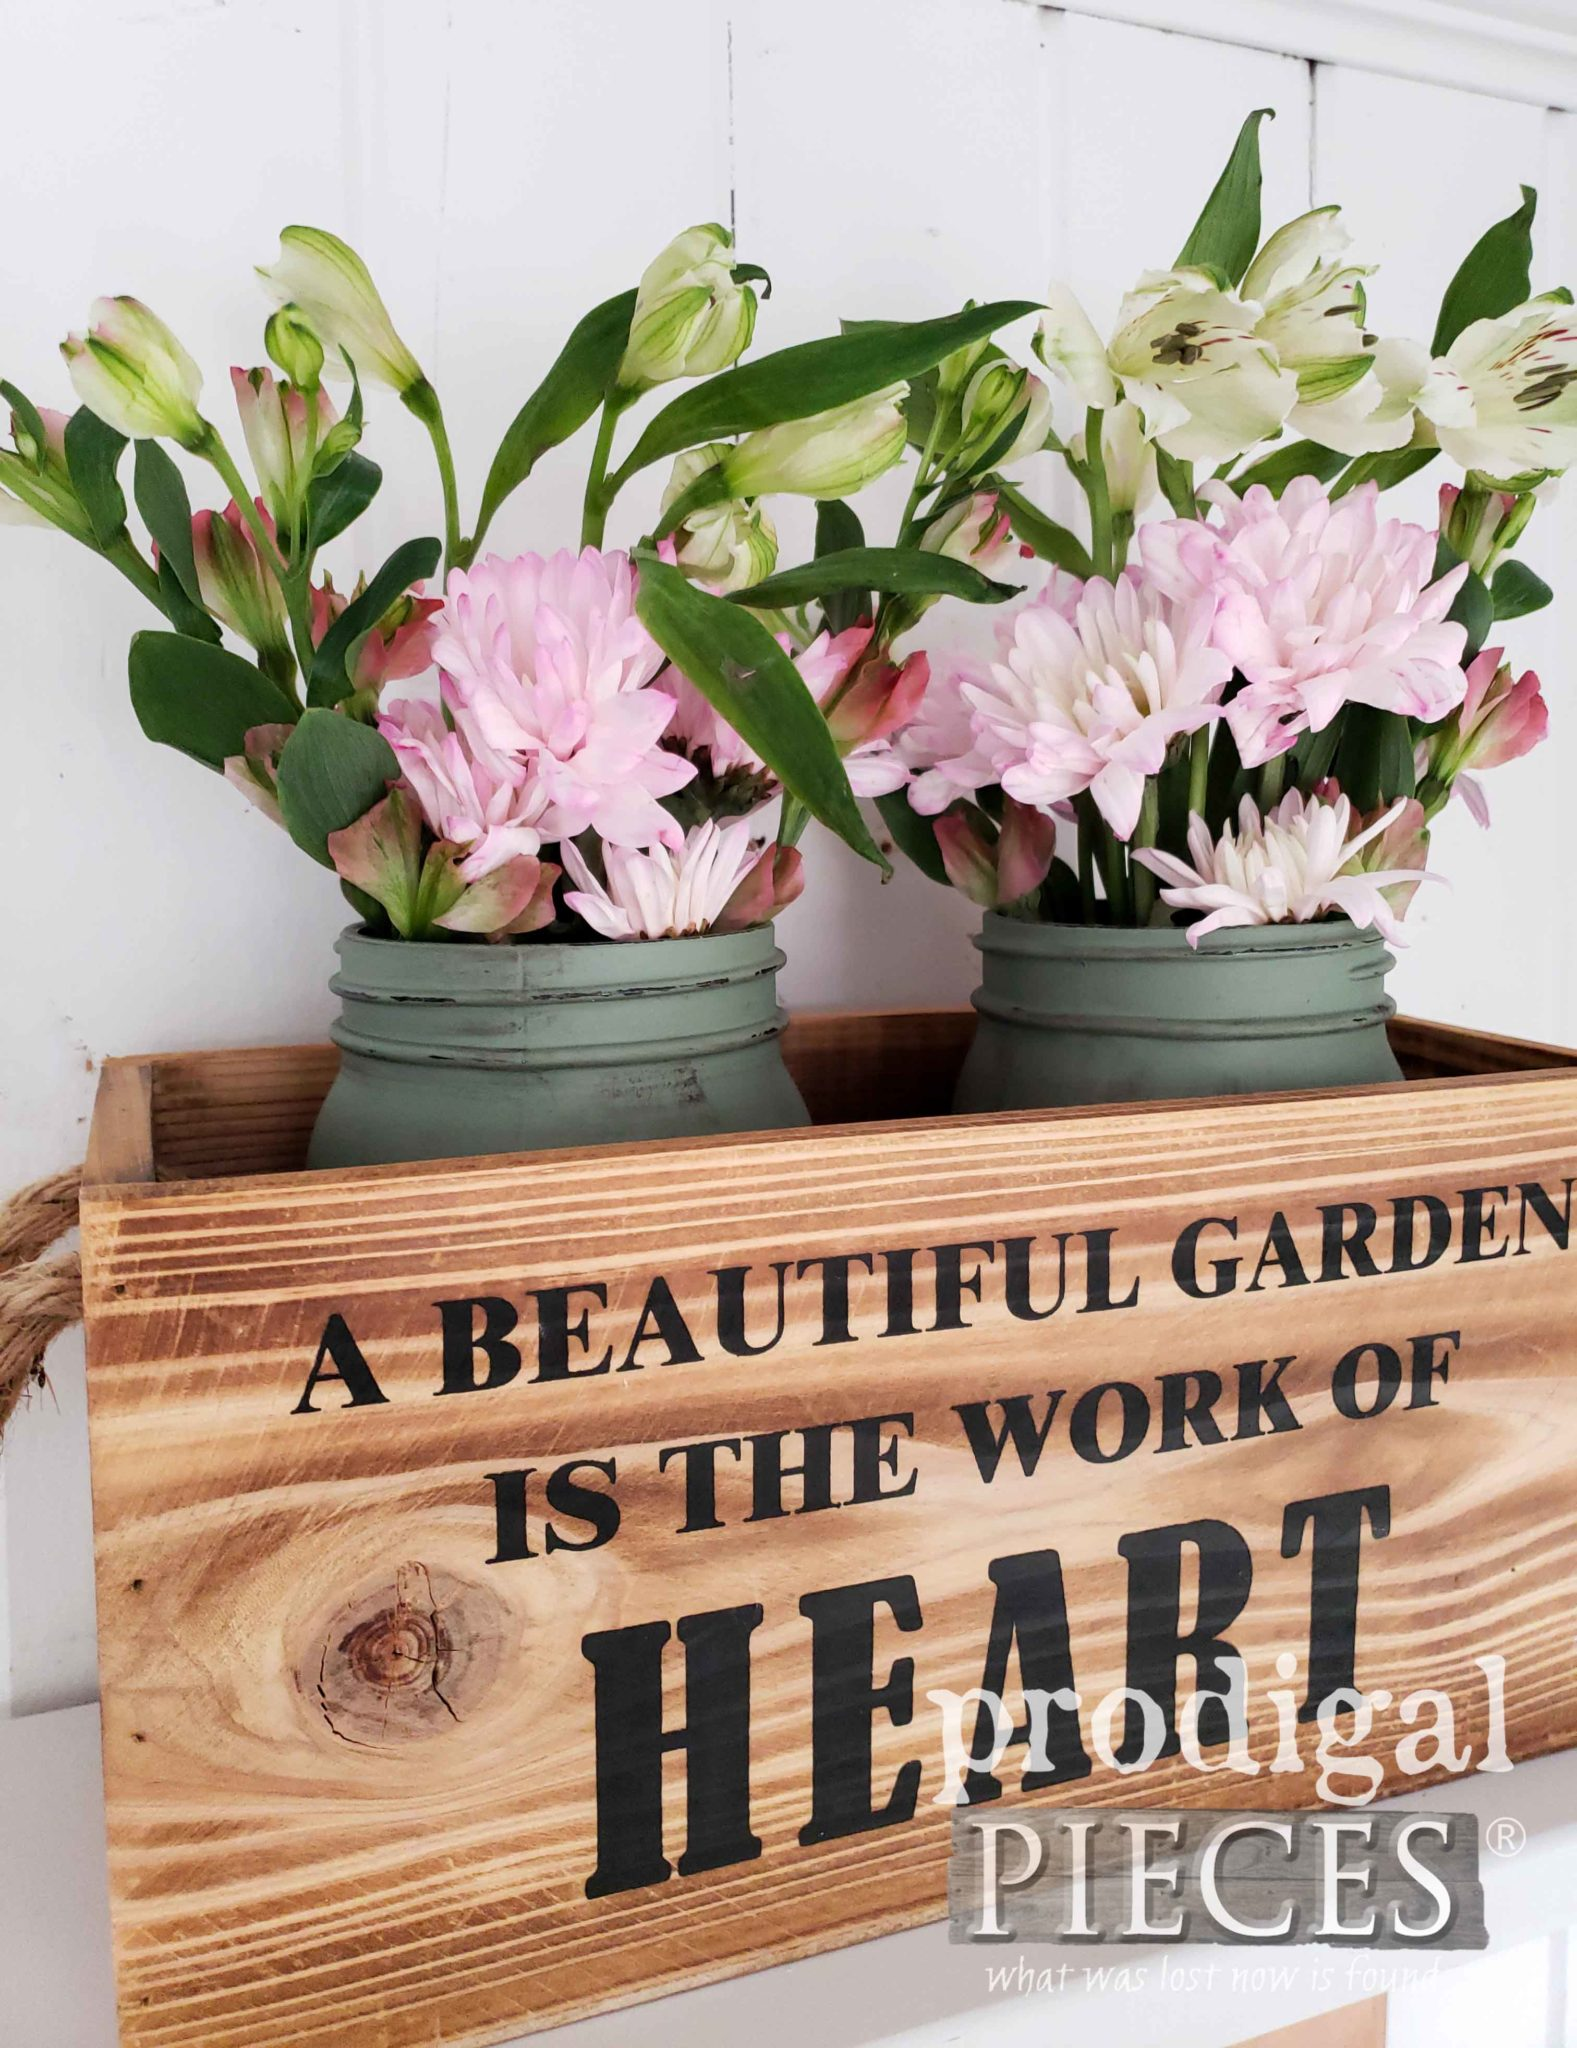 Create a spring vignette with a little DIY fun by Larissa of Prodigal Pieces | prodigalpieces.com #prodigalpieces #spring #handmade #home #farmhouse #diy #homedecor